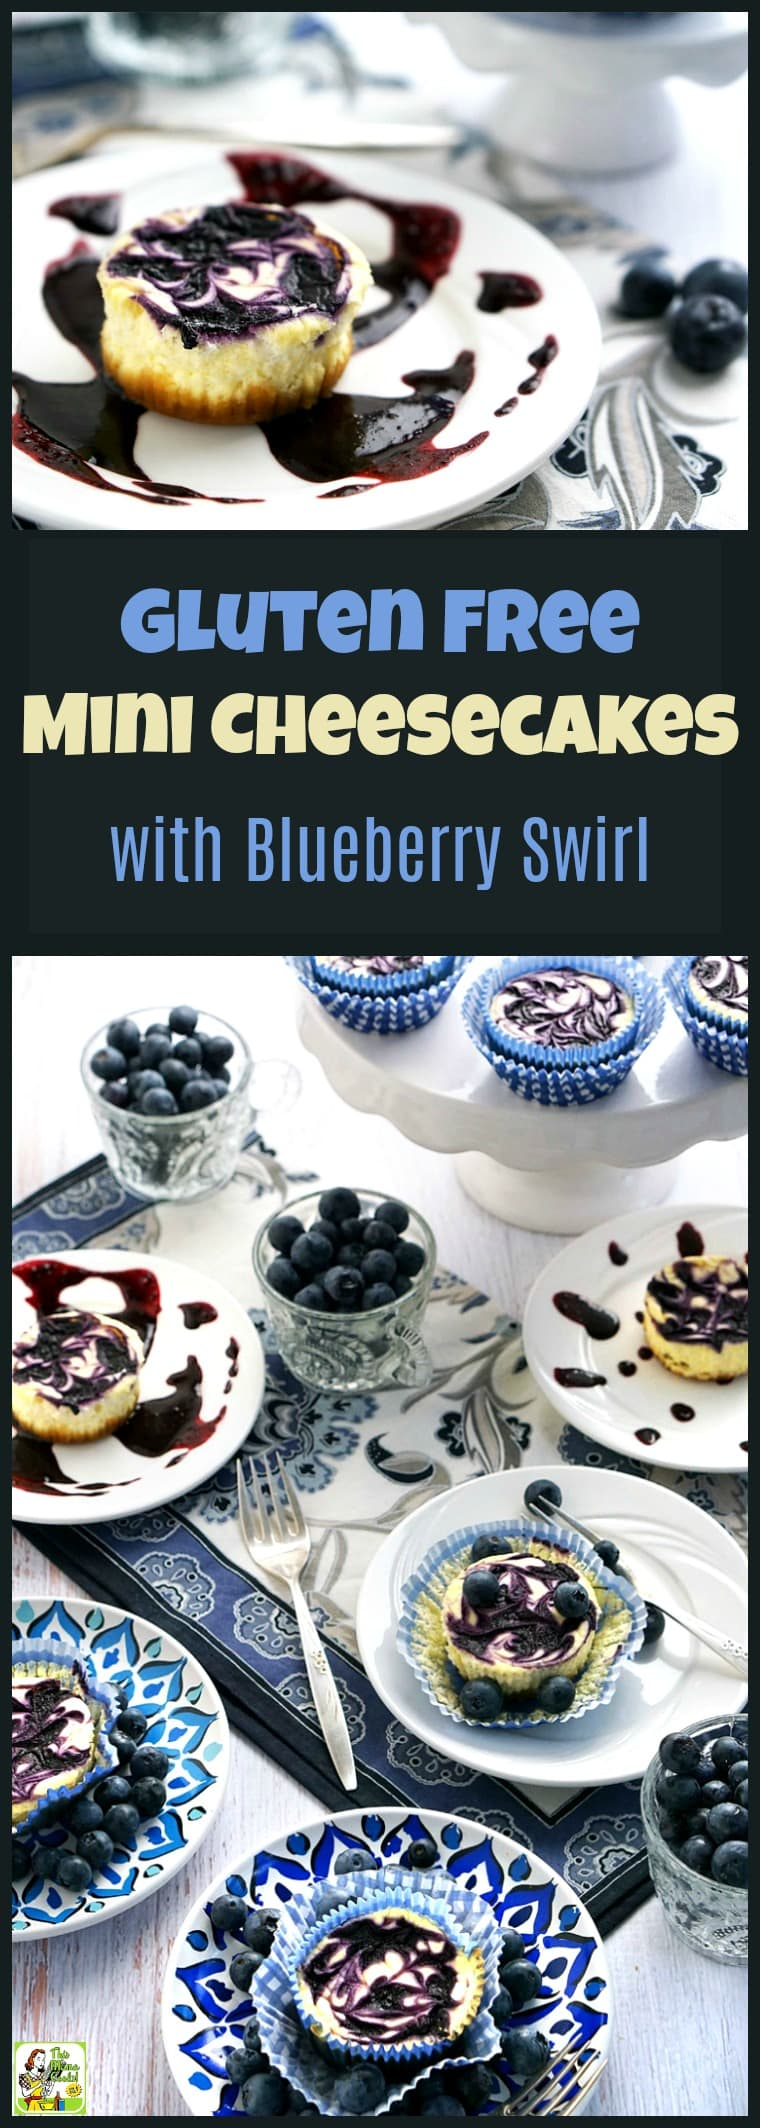 Gluten Free Mini Cheesecake with Blueberry Swirl is a guilt-free dessert recipe because they're made with blueberries, non-fat Greek yogurt, low-fat cream cheese & monk fruit sweetener. This gluten-free mini cheesecake recipe is the ideal dessert for parties & tailgating! #recipe #easy #recipeoftheday #healthyrecipes #glutenfree #easyrecipes #snack #snacks #dessert #dessertrecipes #blueberries #cheesecake #cupcakes #cupcake #baking #party #partyfood #tailgating #entertaining